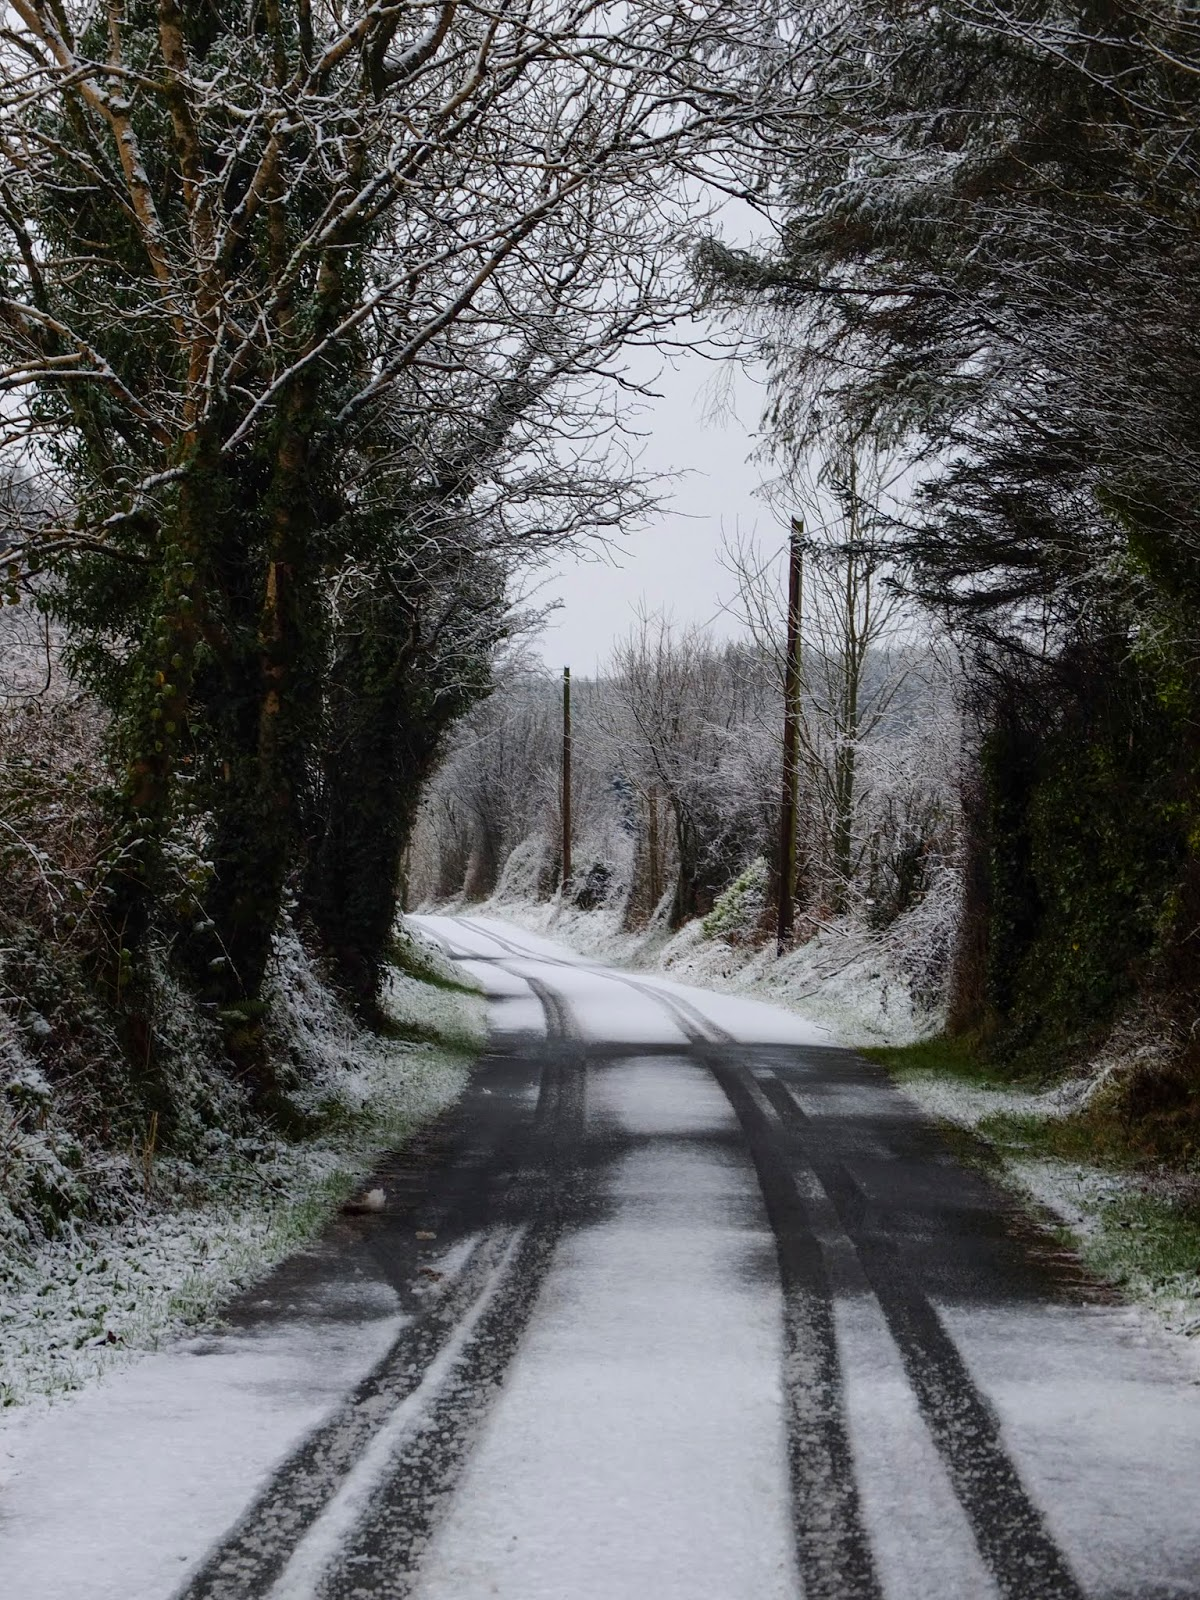 Snow capped country road in the Boggeragh Mountains, Co.Cork.